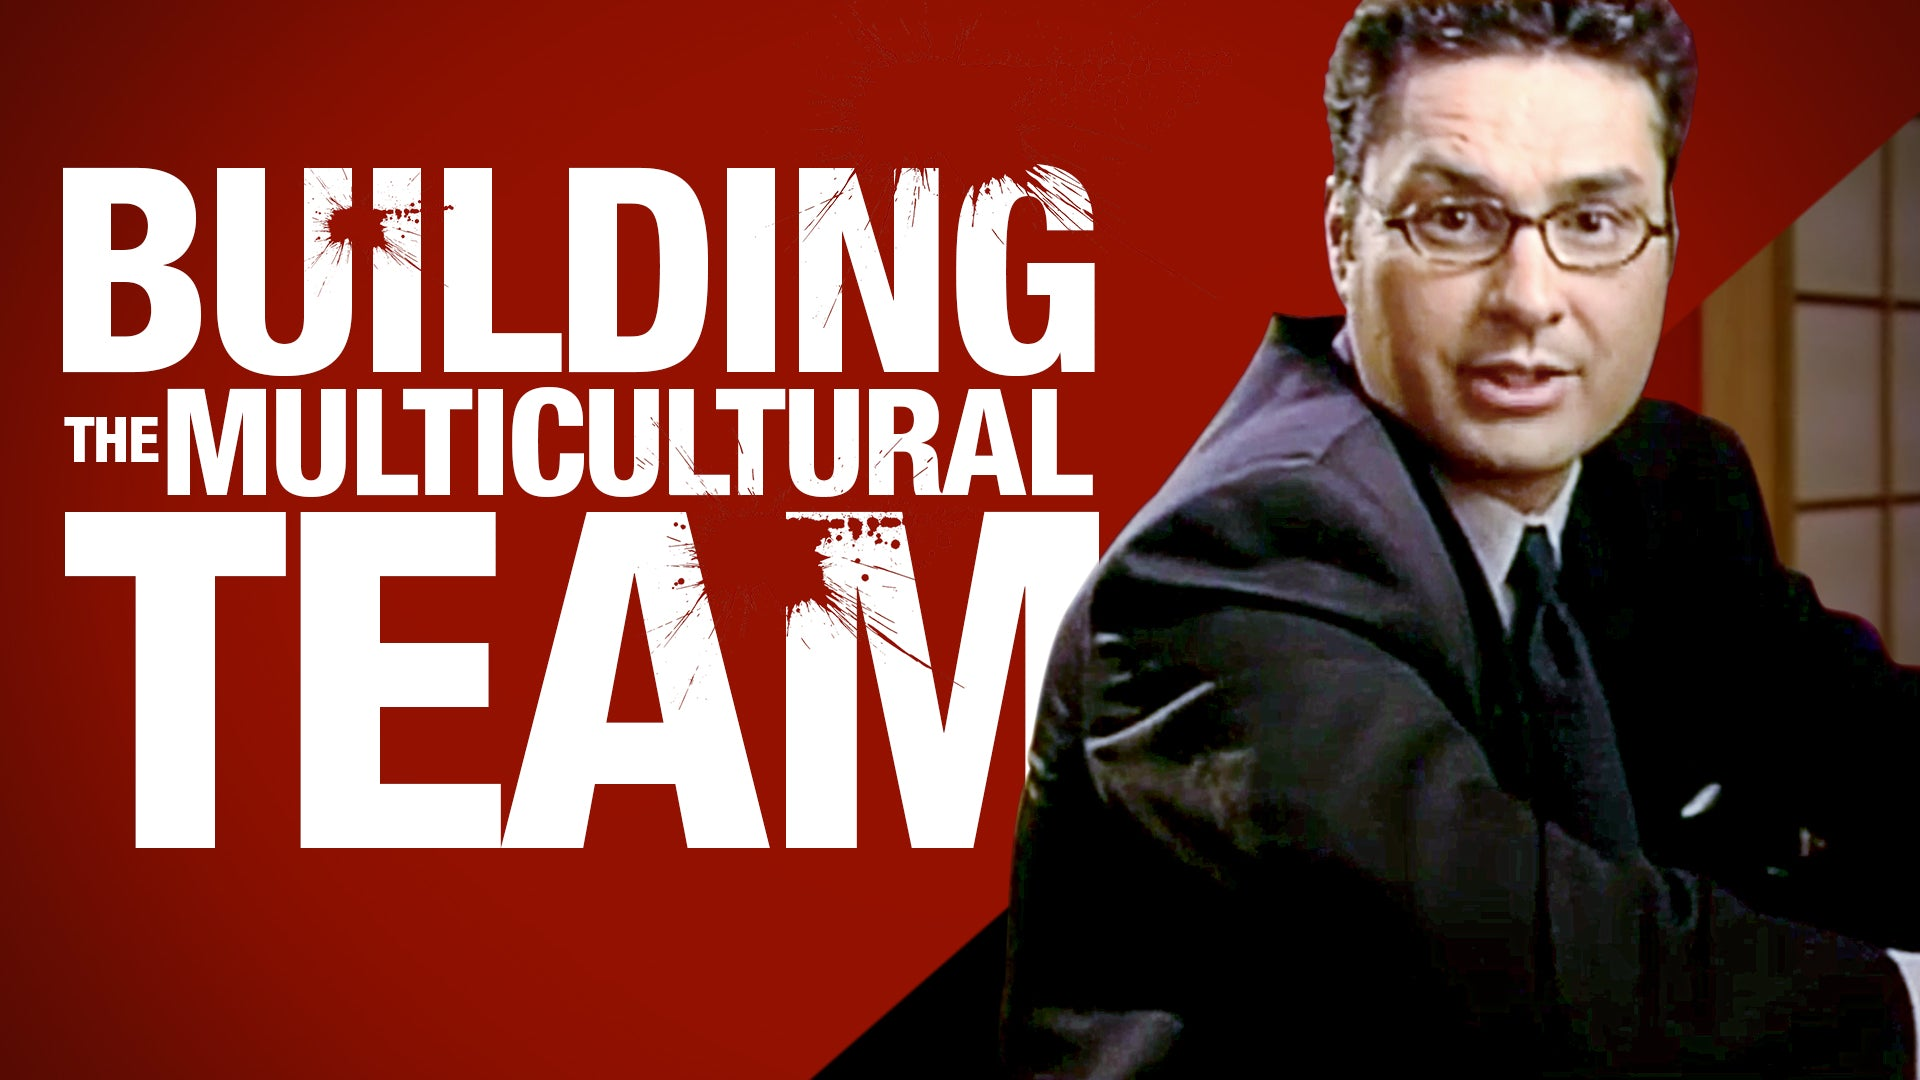 Building the Multicultural Team